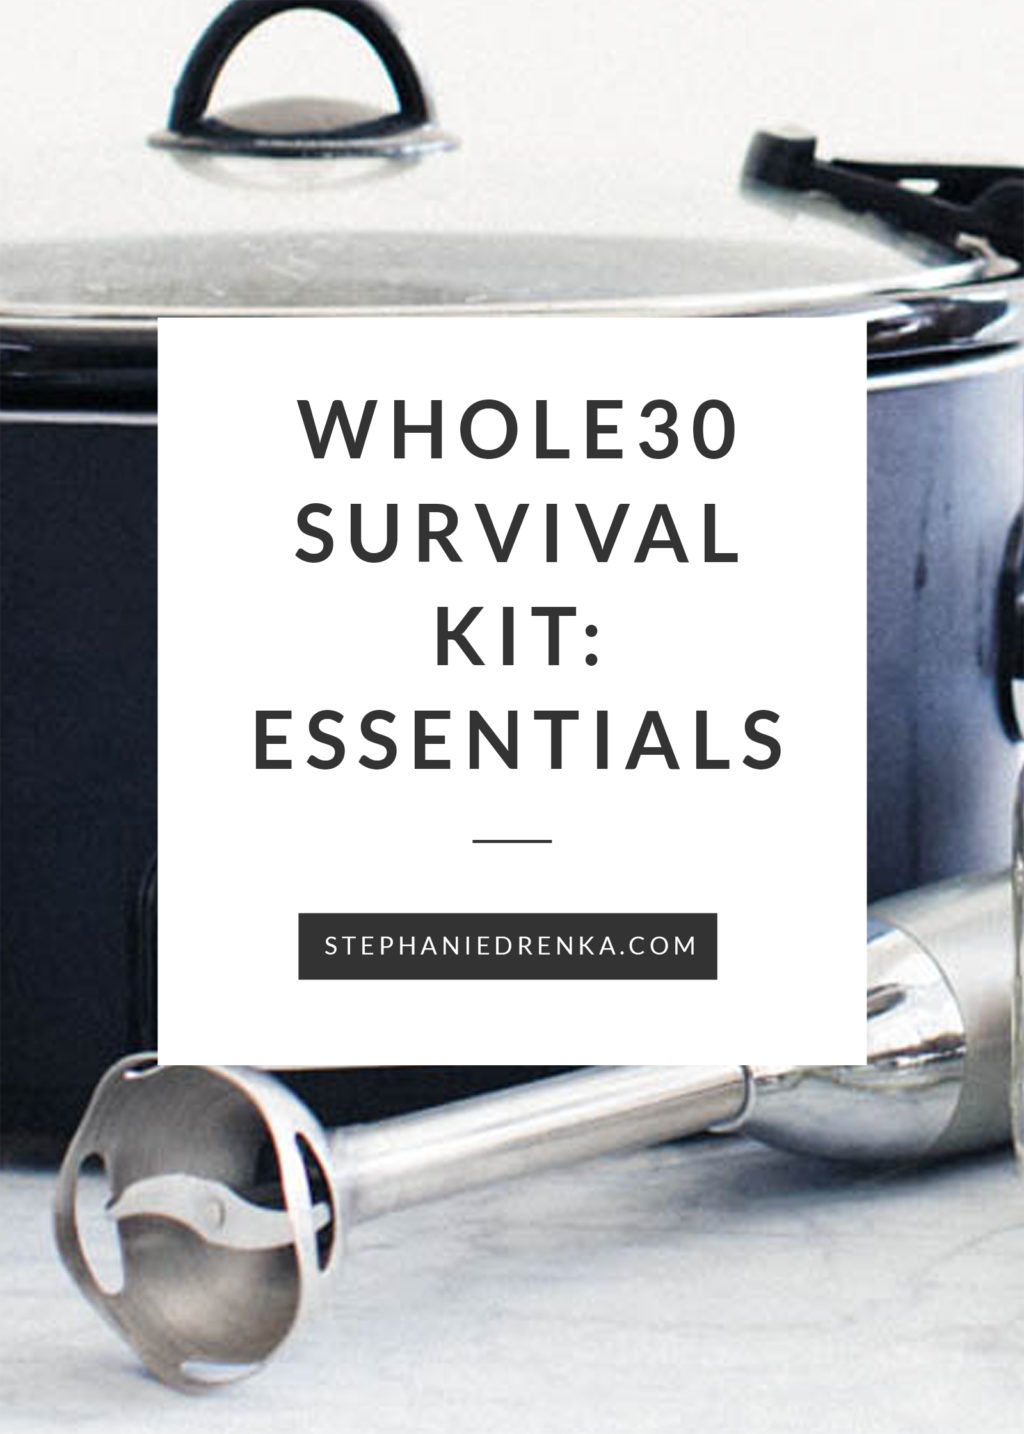 Whole30 Survival Kit: Essential Tools to Help You Get Through Your Whole30 Challenge!